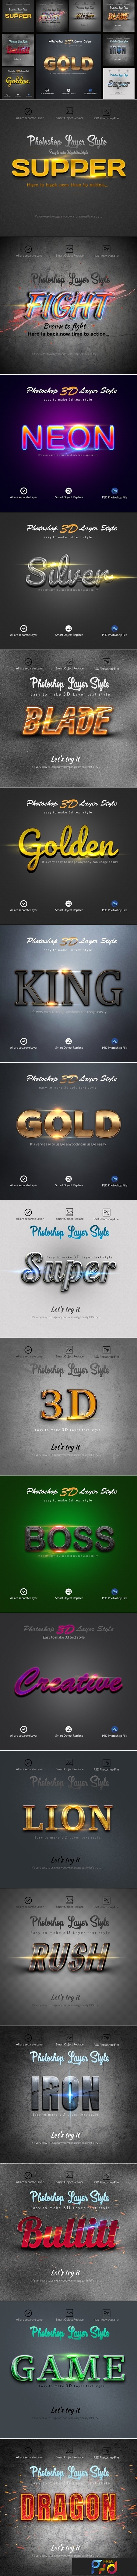 3D Bundle Photoshop Layer Style 3818287 1